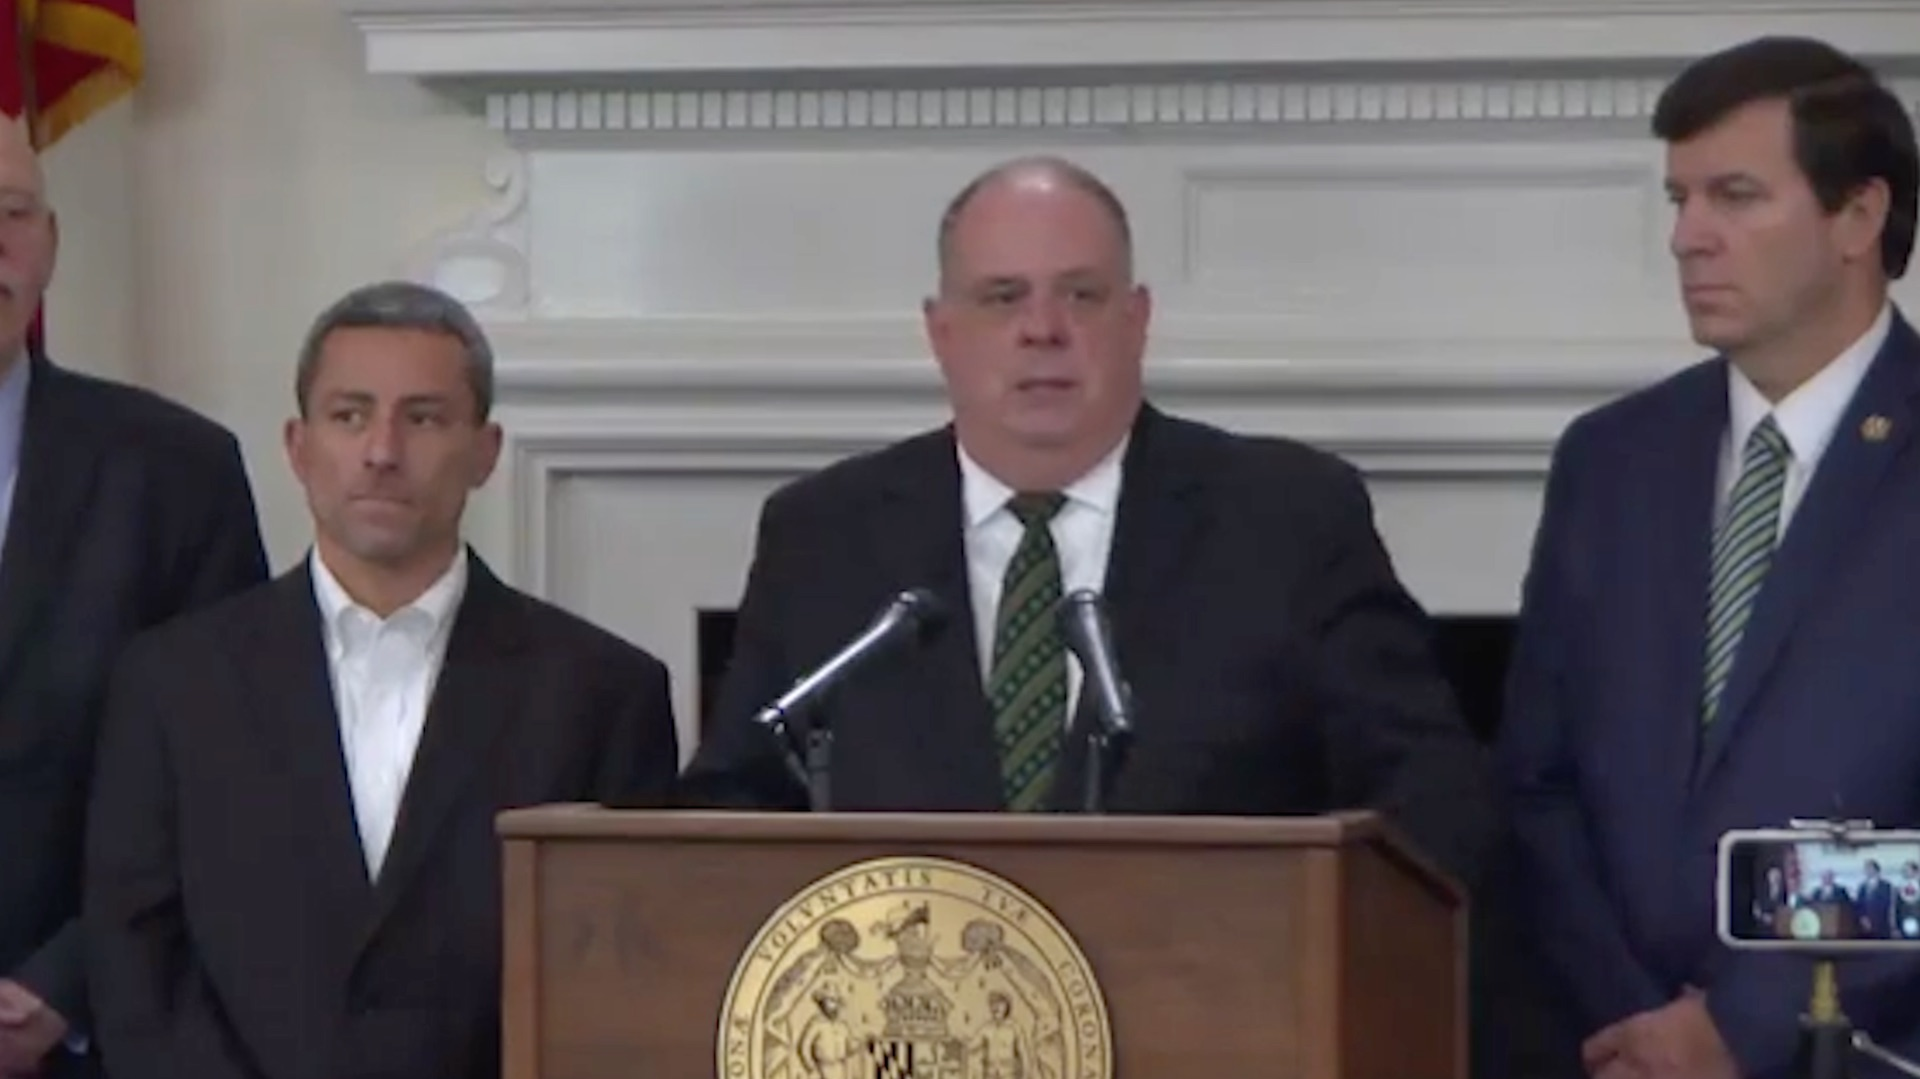 Hogan announces support for fracking ban in maryland the washington post